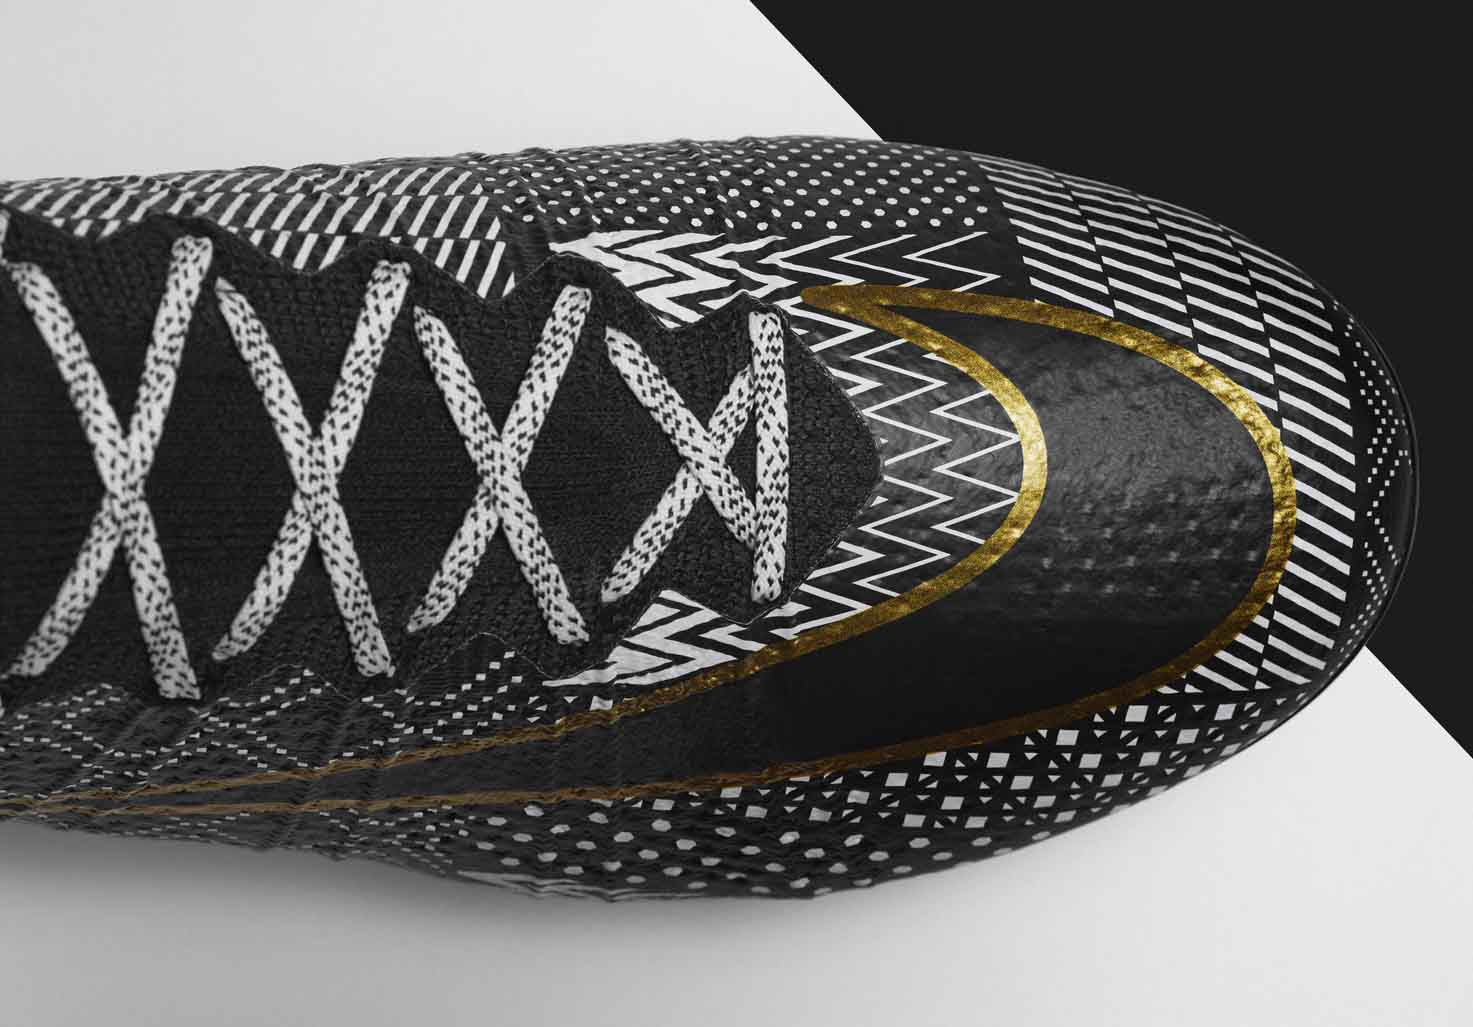 Nike Mercurial Superfly Black History Month Boots Released